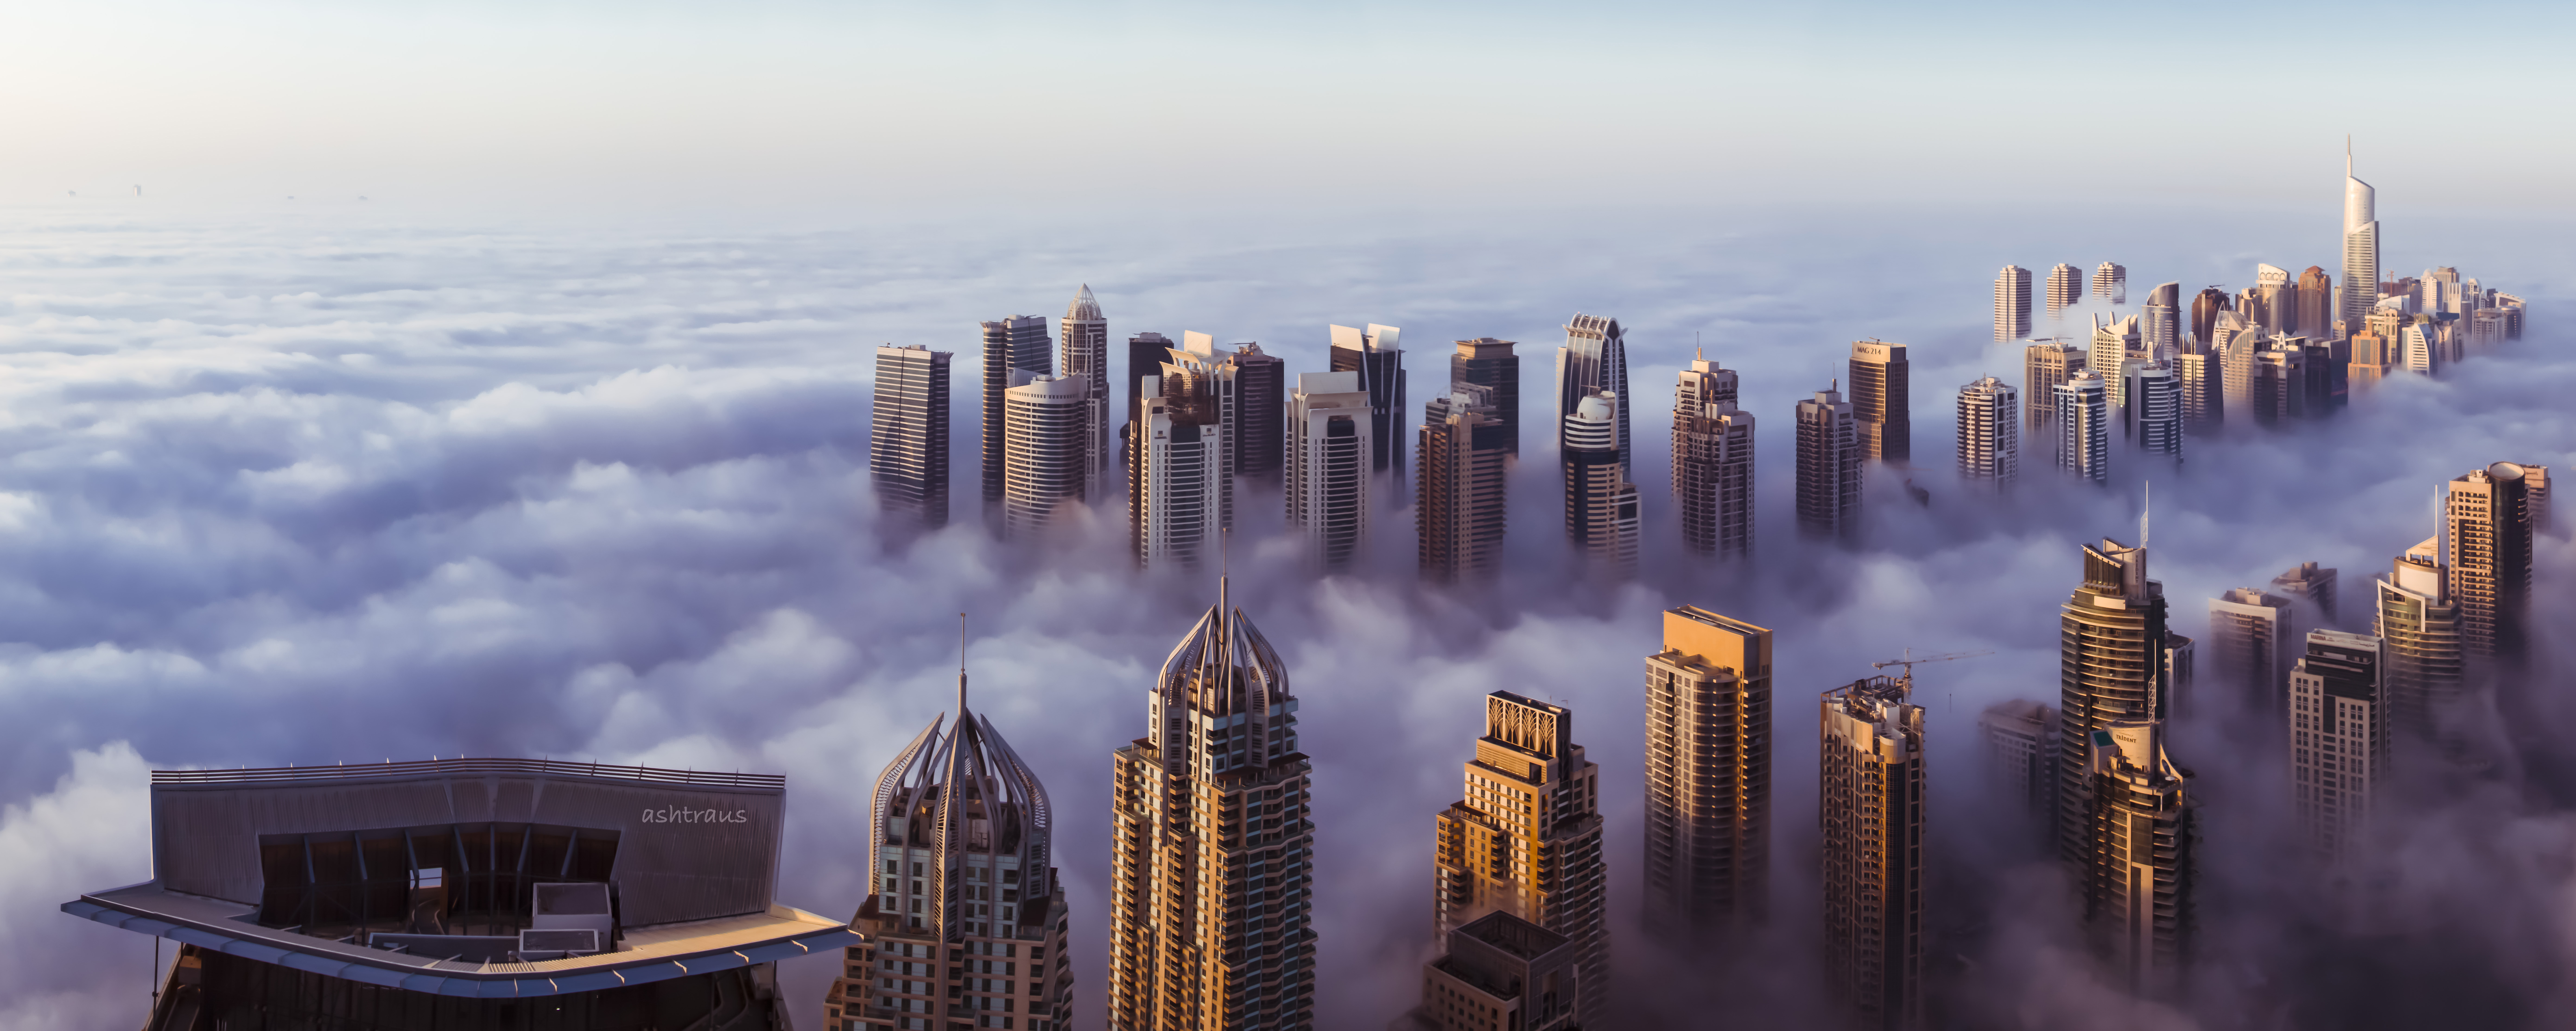 dubai 8k ultra hd wallpaper and background image | 11116x4447 | id